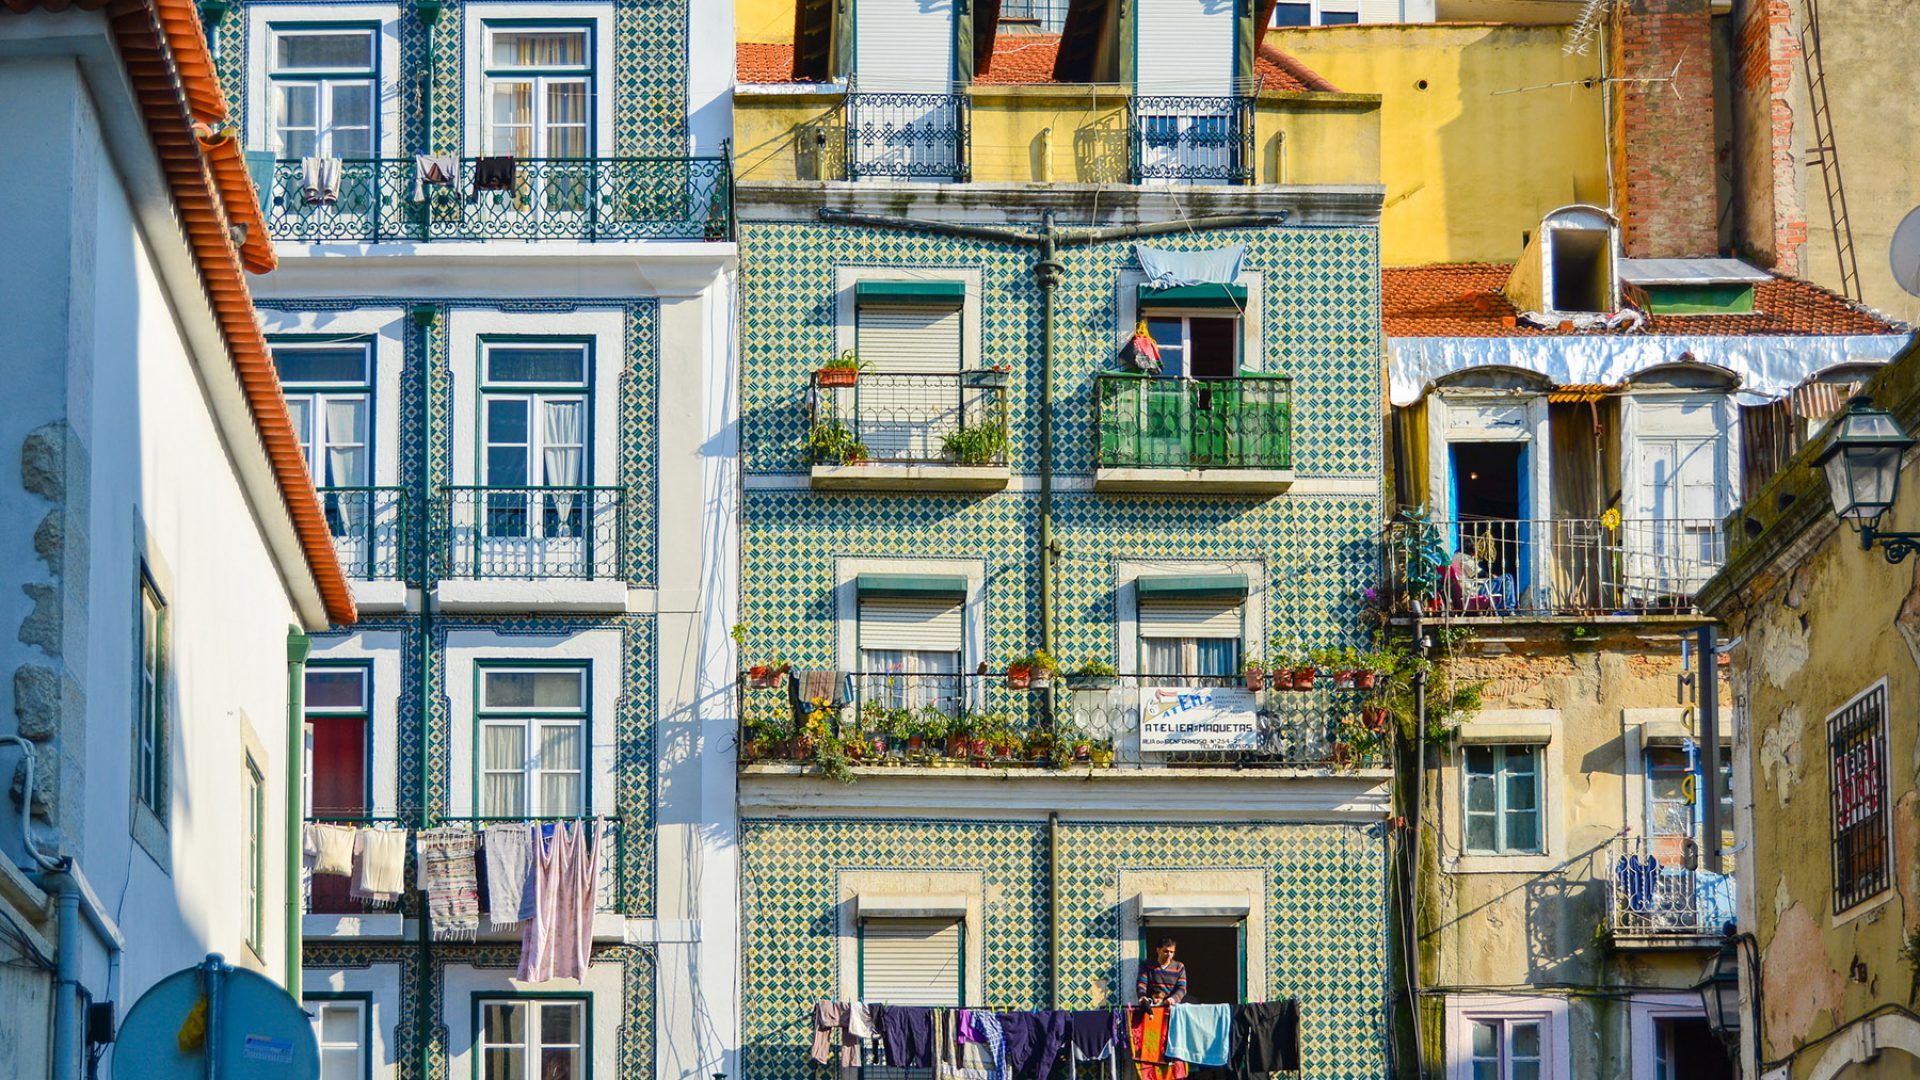 Housing in Portugal